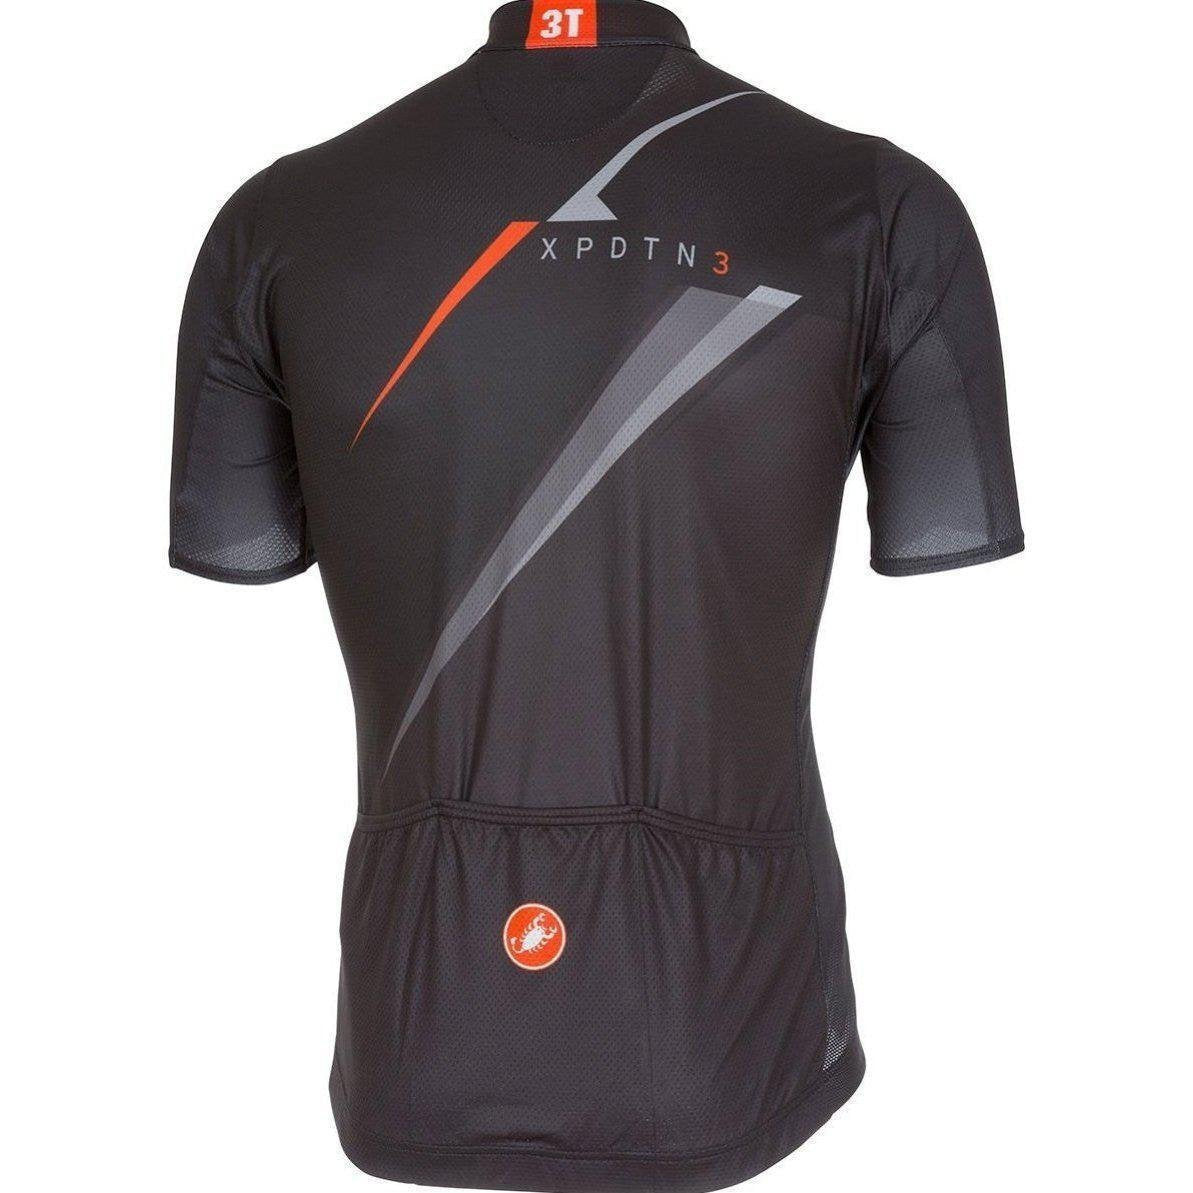 Castelli-Castelli 3T XPDTN Discover Jersey--saddleback-elite-performance-cycling